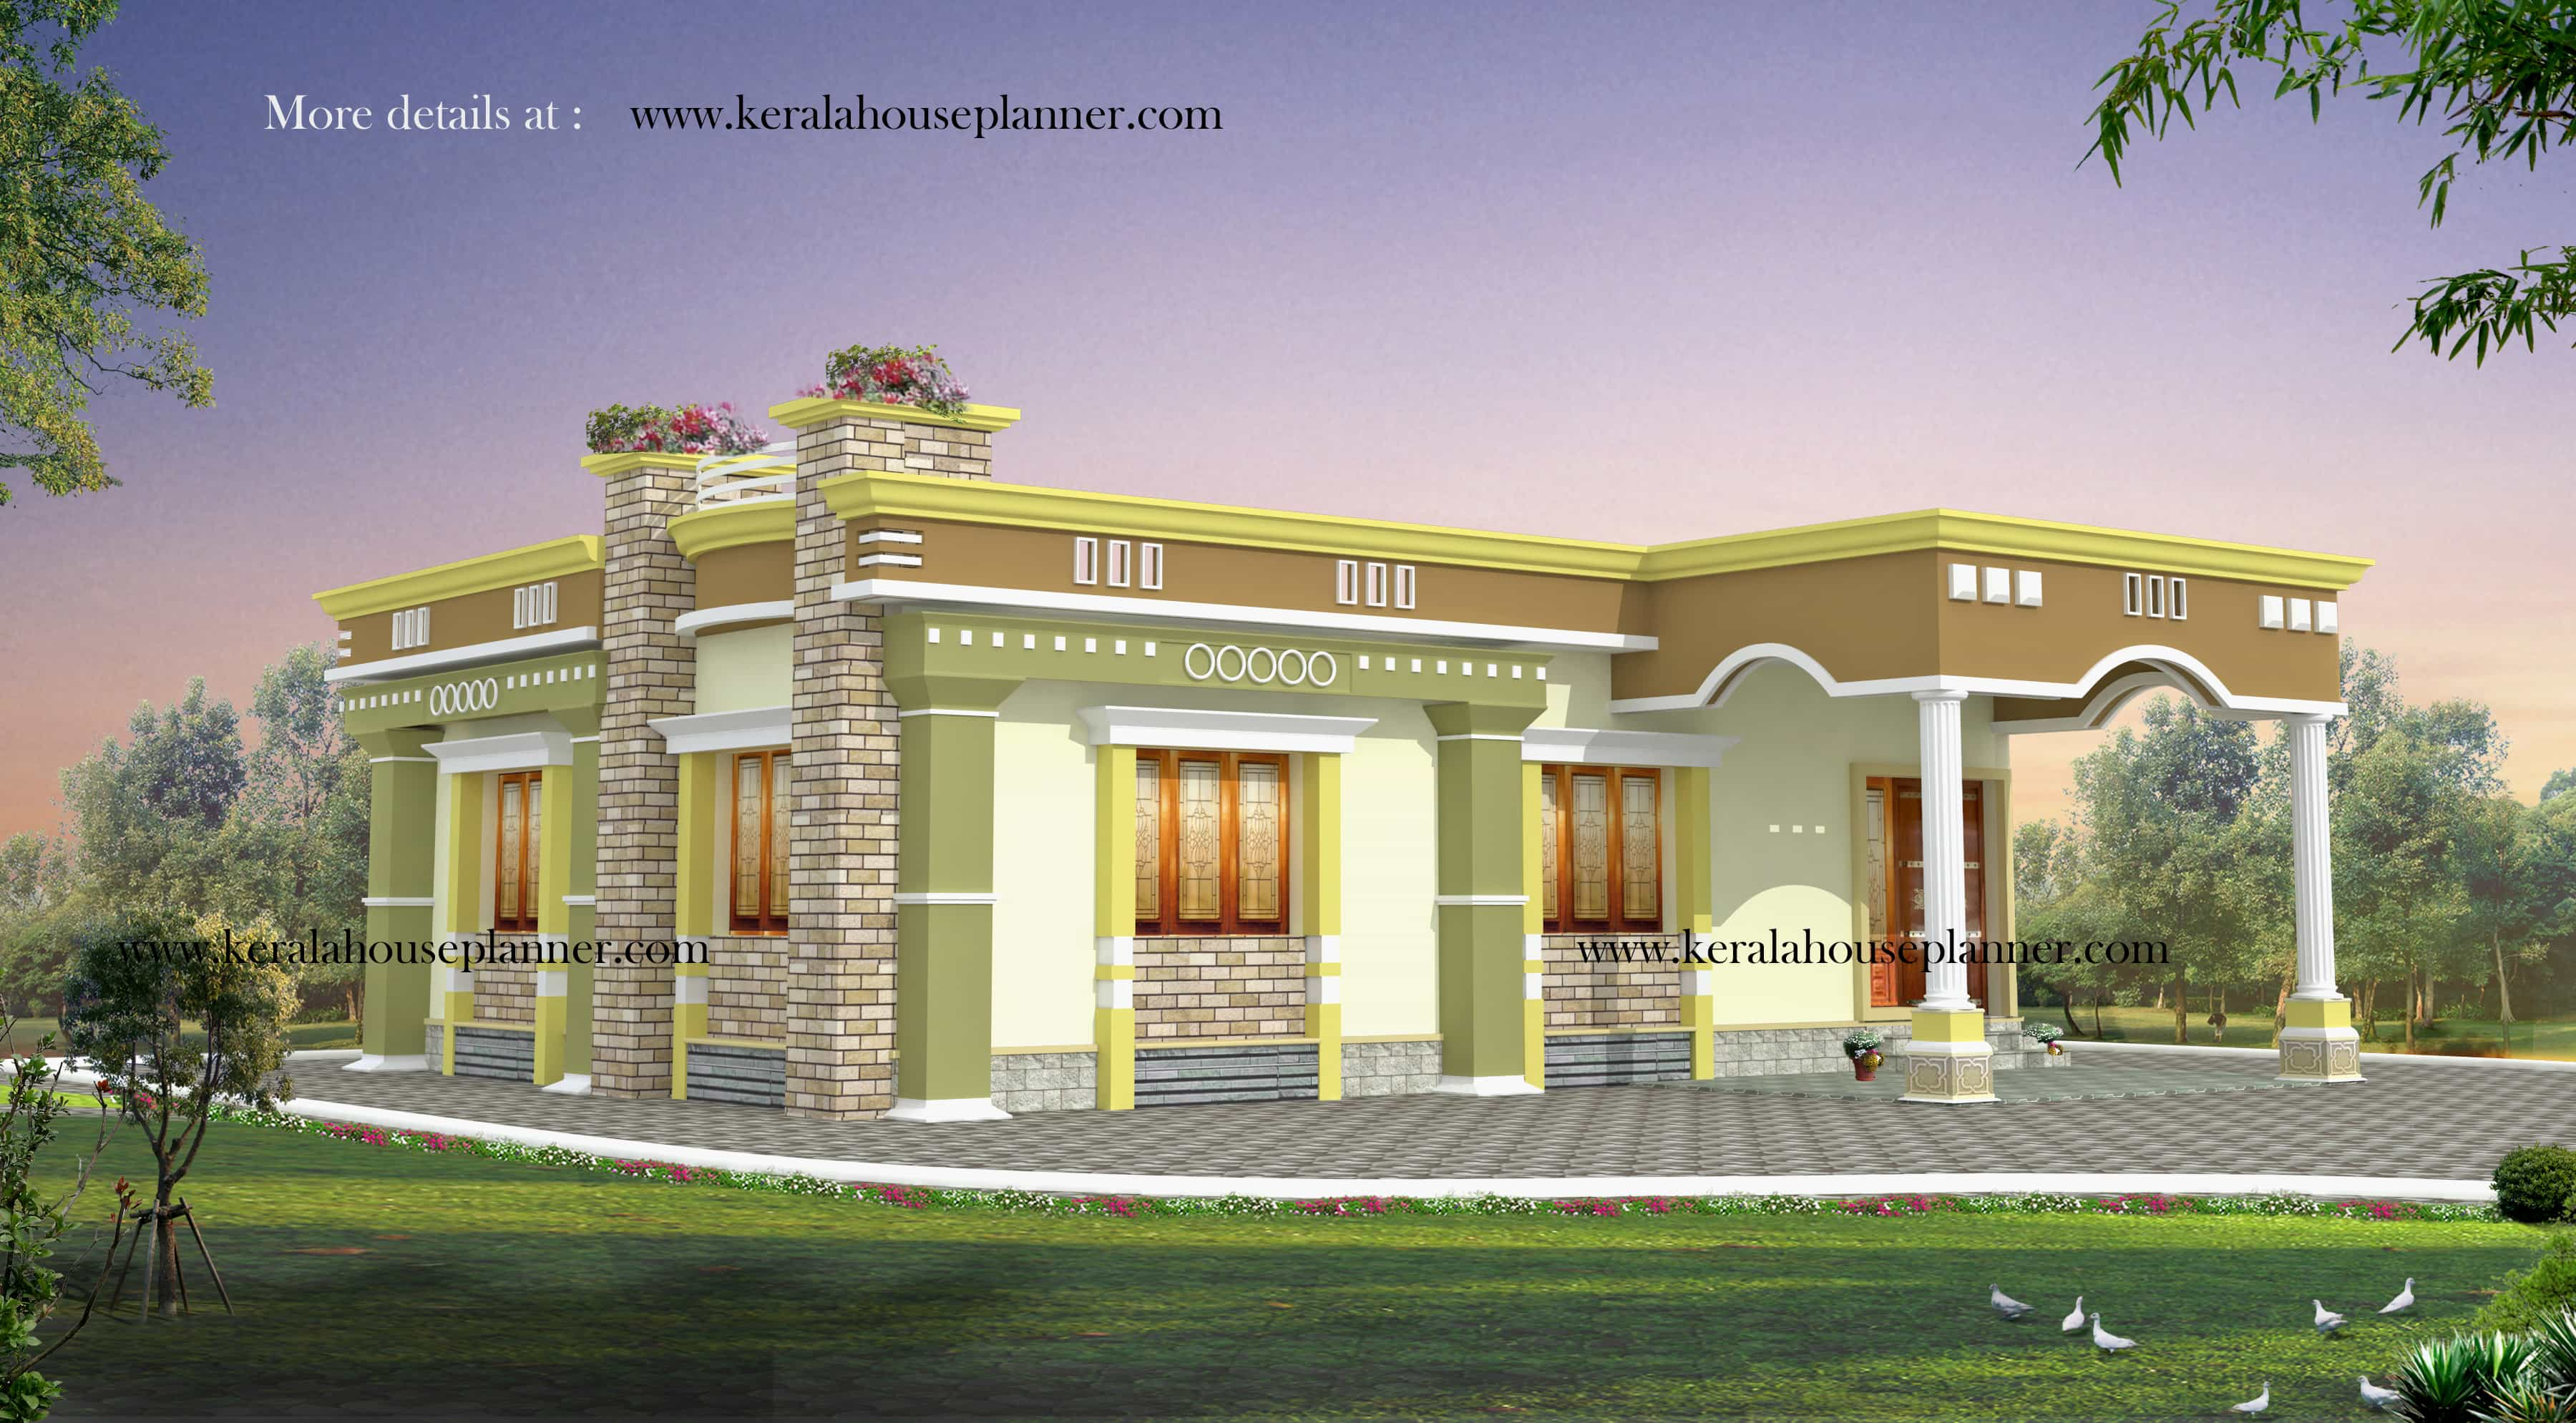 Kerala house plans 1200 sq ft with photos khp for House plasn